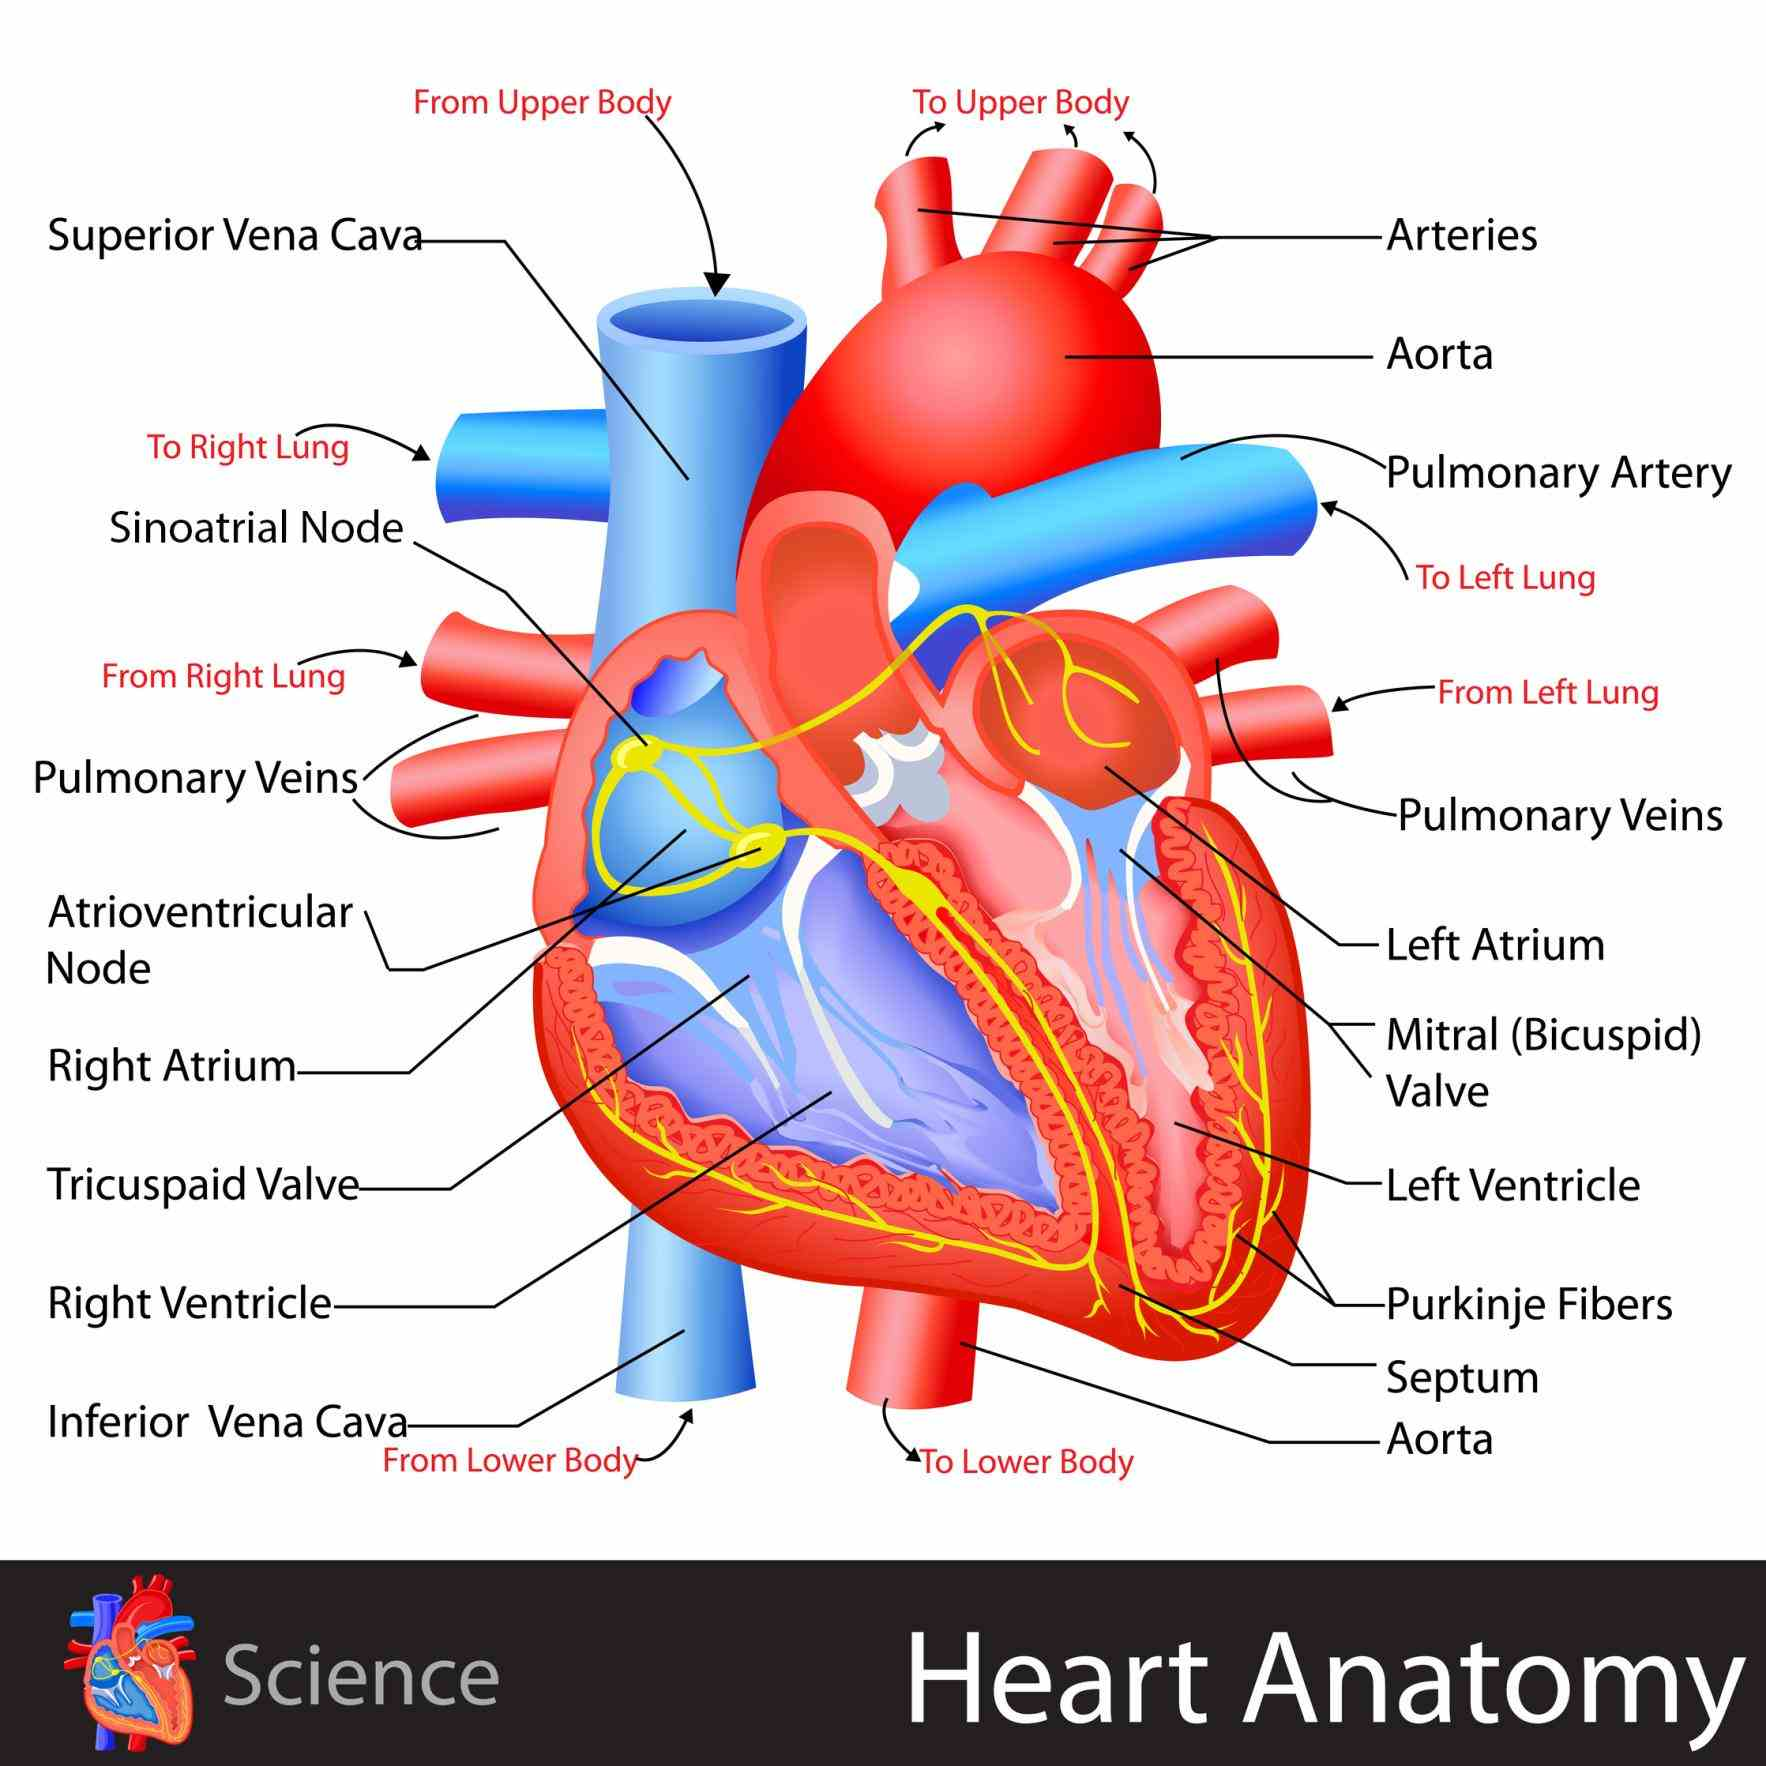 the Heart Structures And Functions Anatomy heart is a muscular organ about size of closed fist that functions